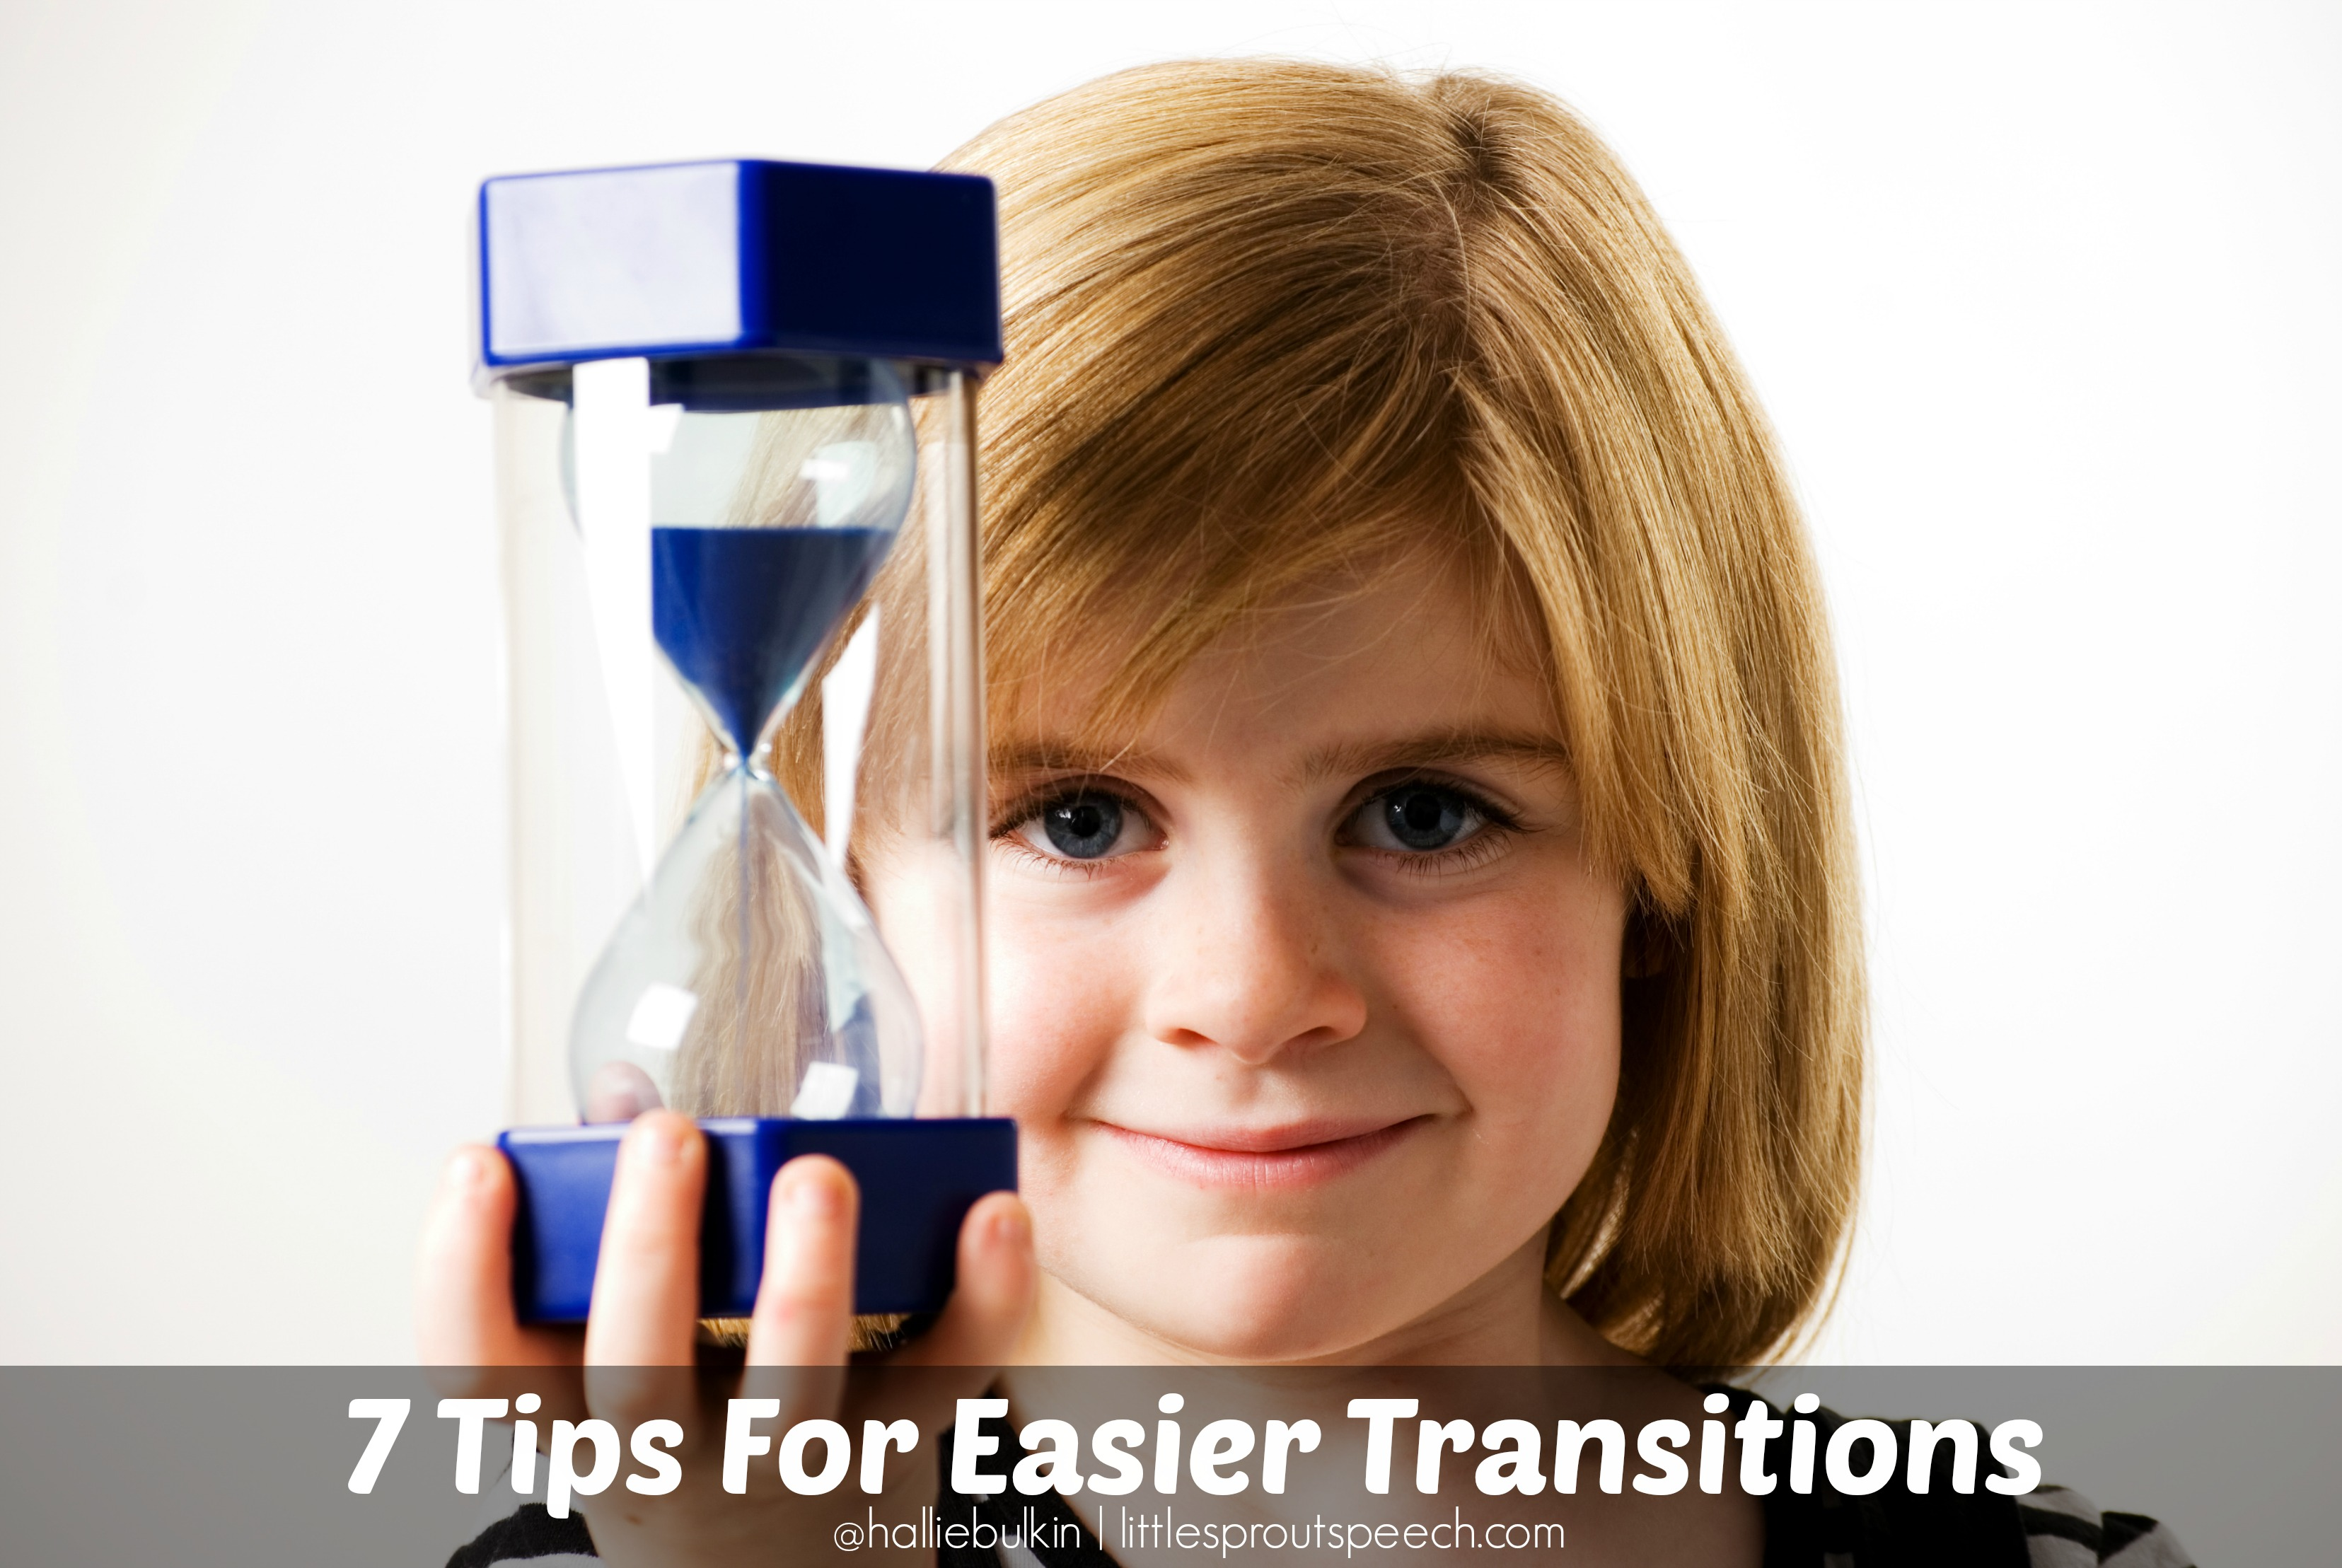 Transitions that children go through